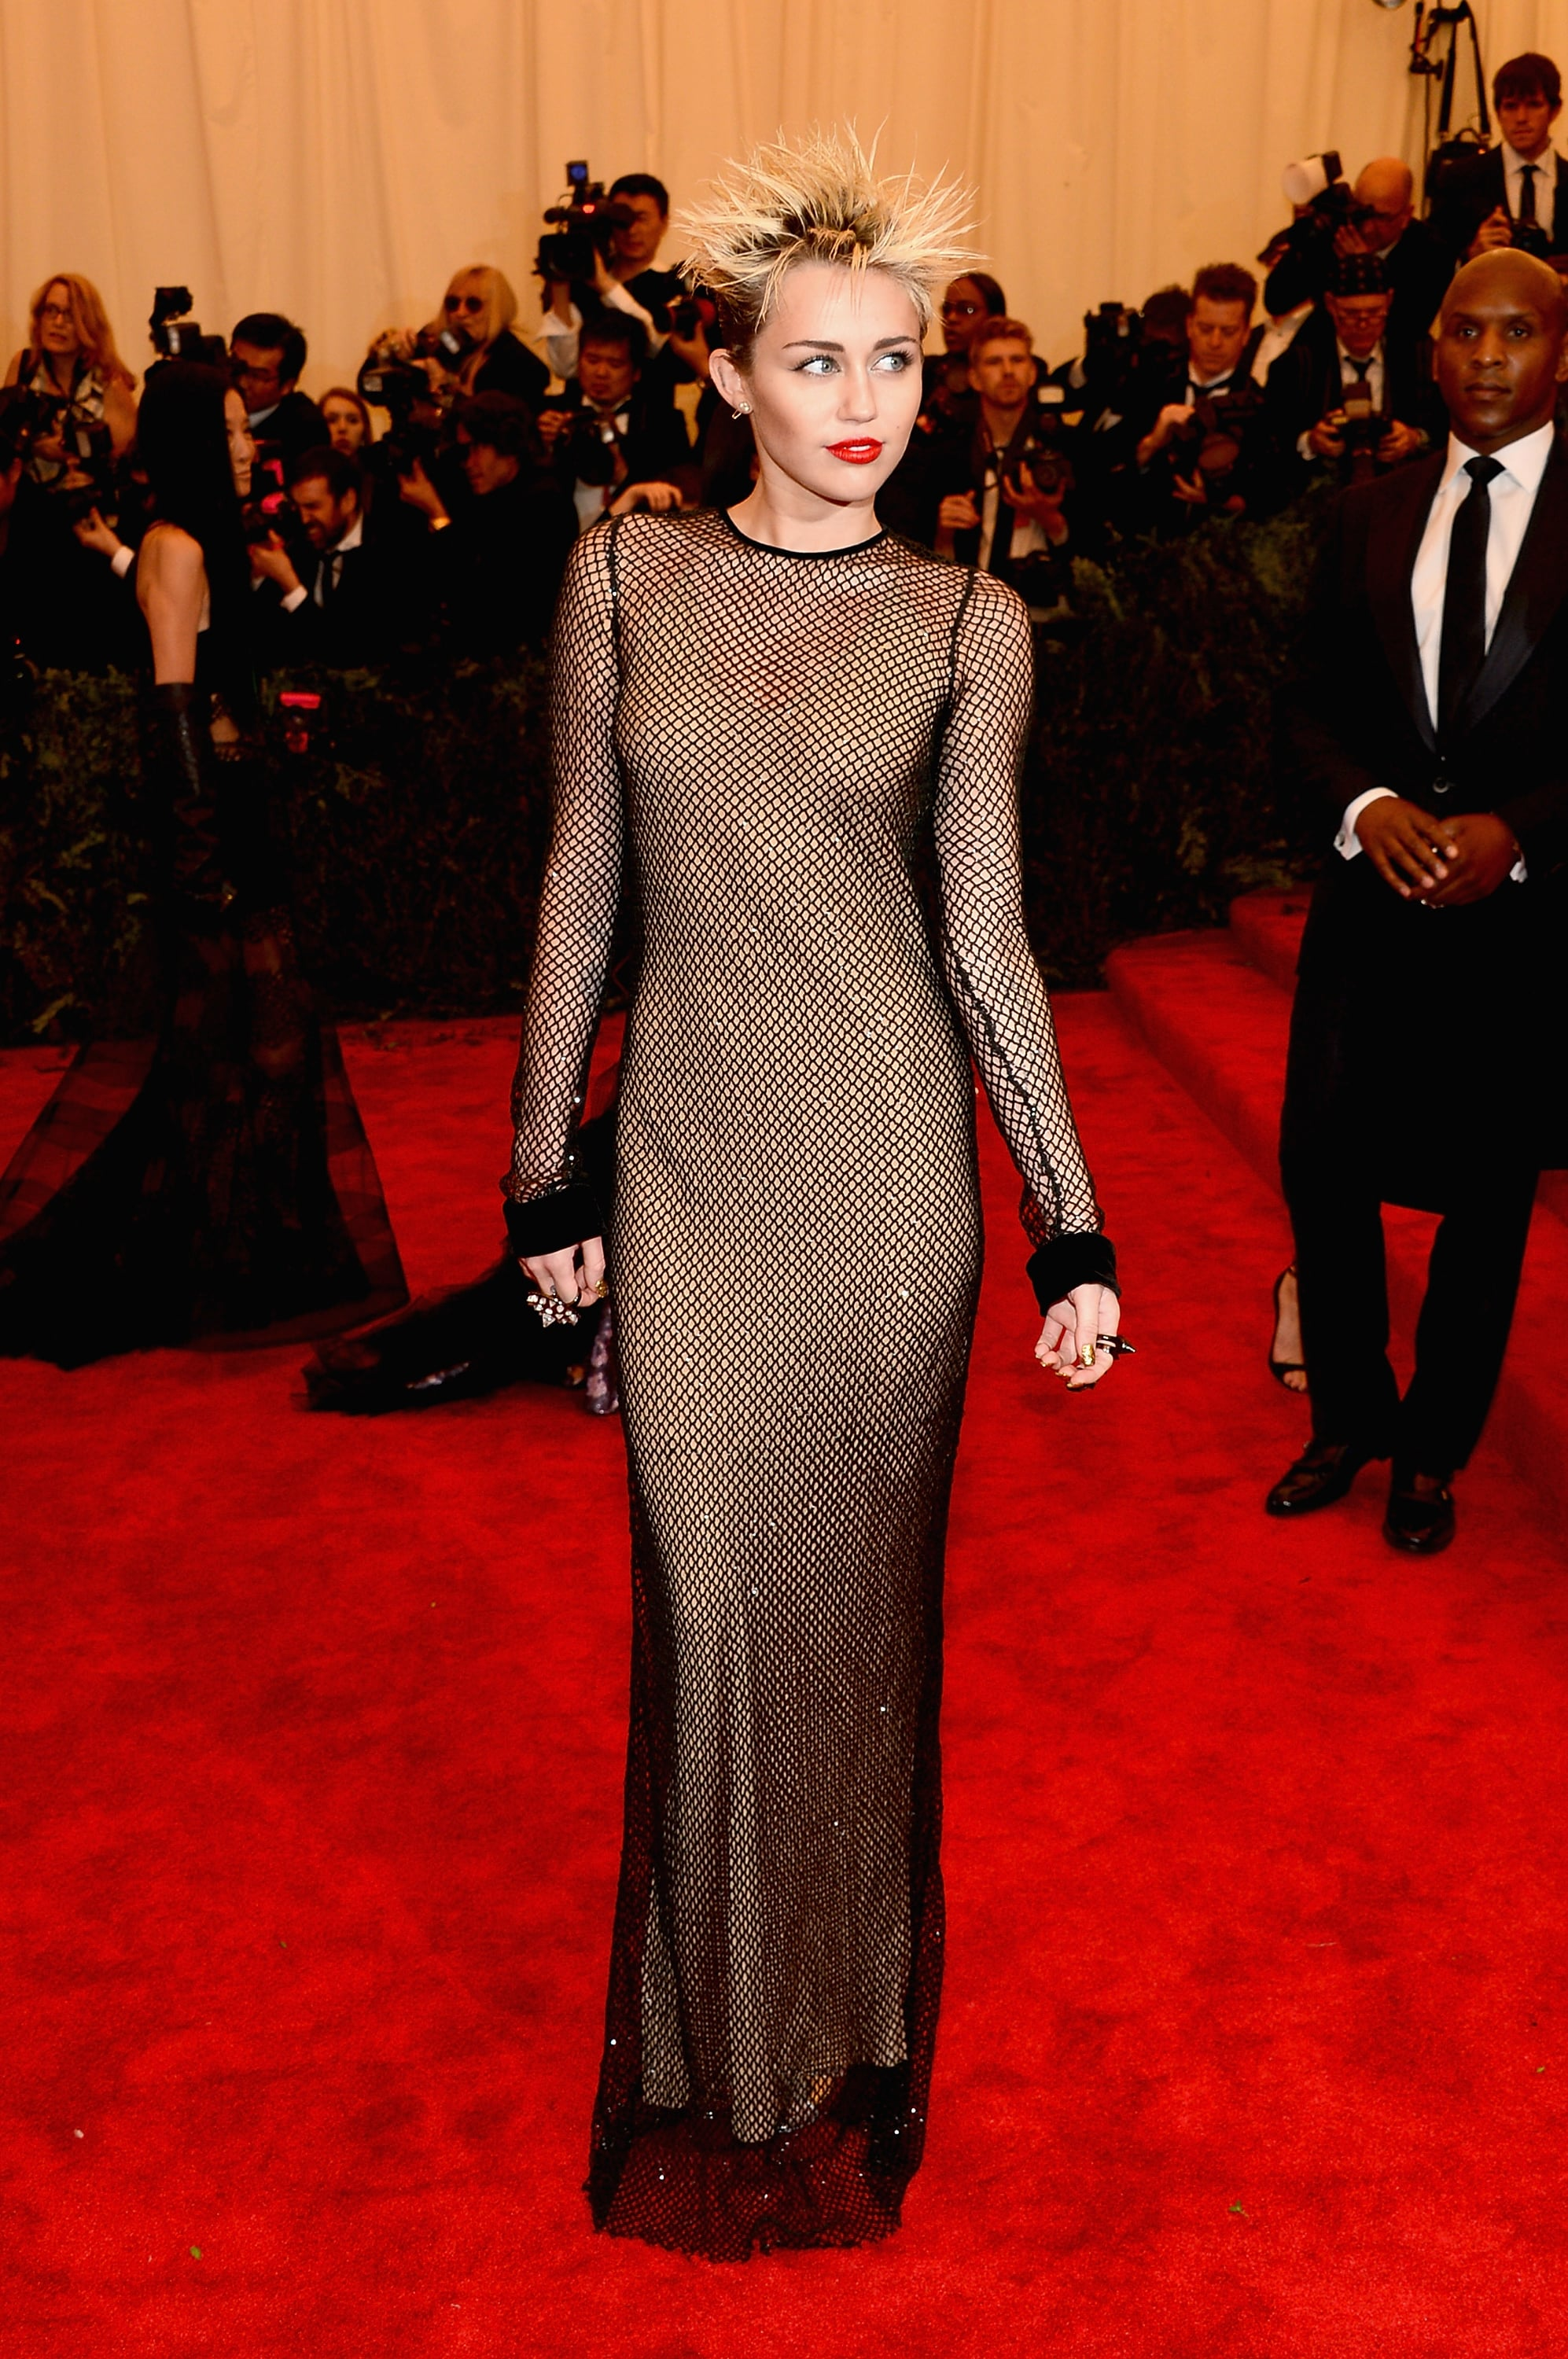 Recently, Miley dropped jaws with her edgy, punk-inspired look for the 2013 Met Gala. She chose a sequined fishnet dress from Marc Jacobs's Fall 2013 runway collection, which she paired with Eddie Borgo jewels, red lipstick, and a spiky hairstyle.